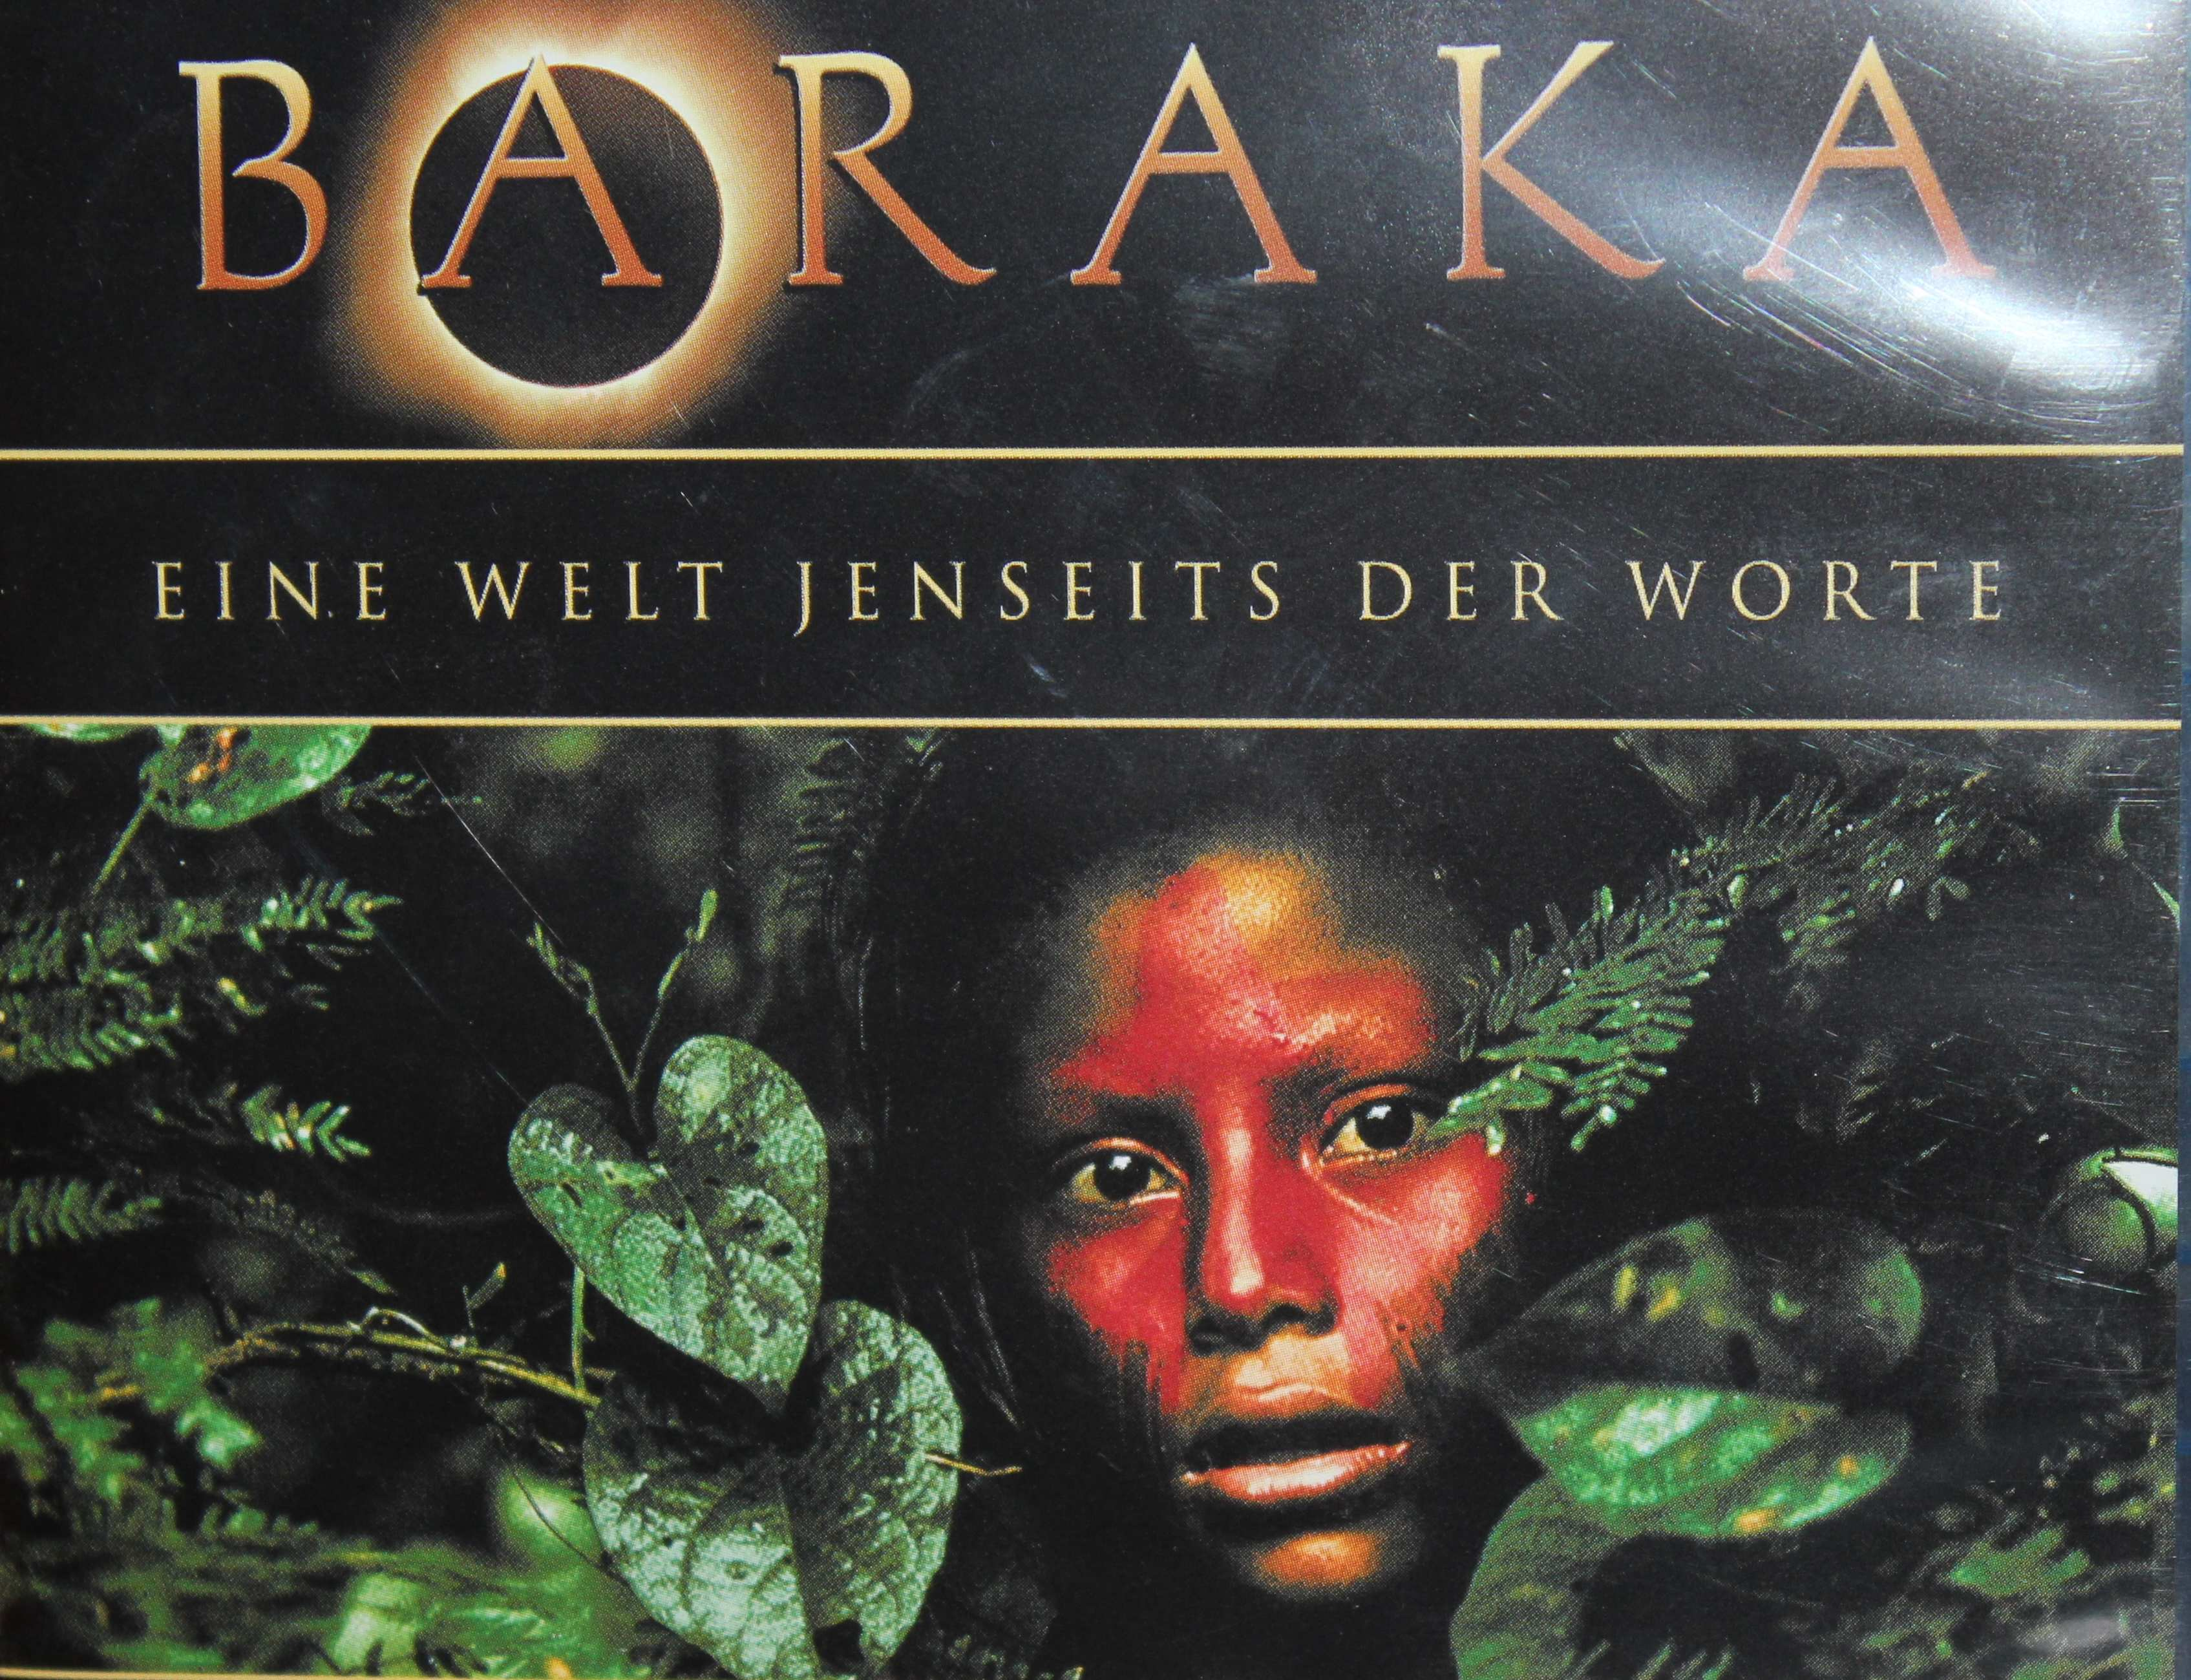 an analysis of the film baraka